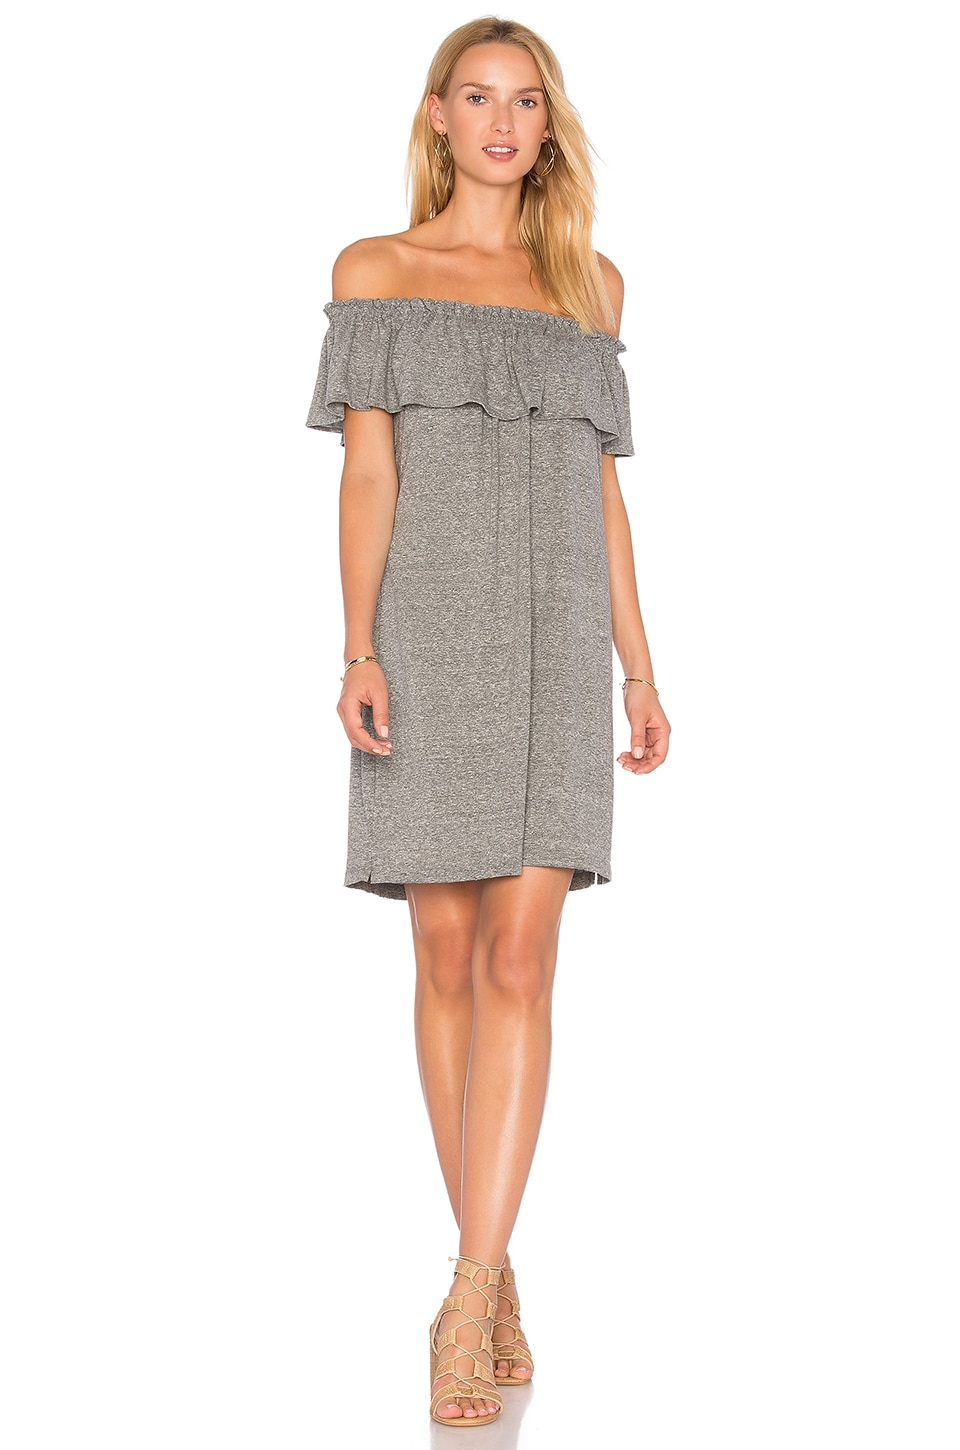 The Ruffle Dress by Current/Elliott